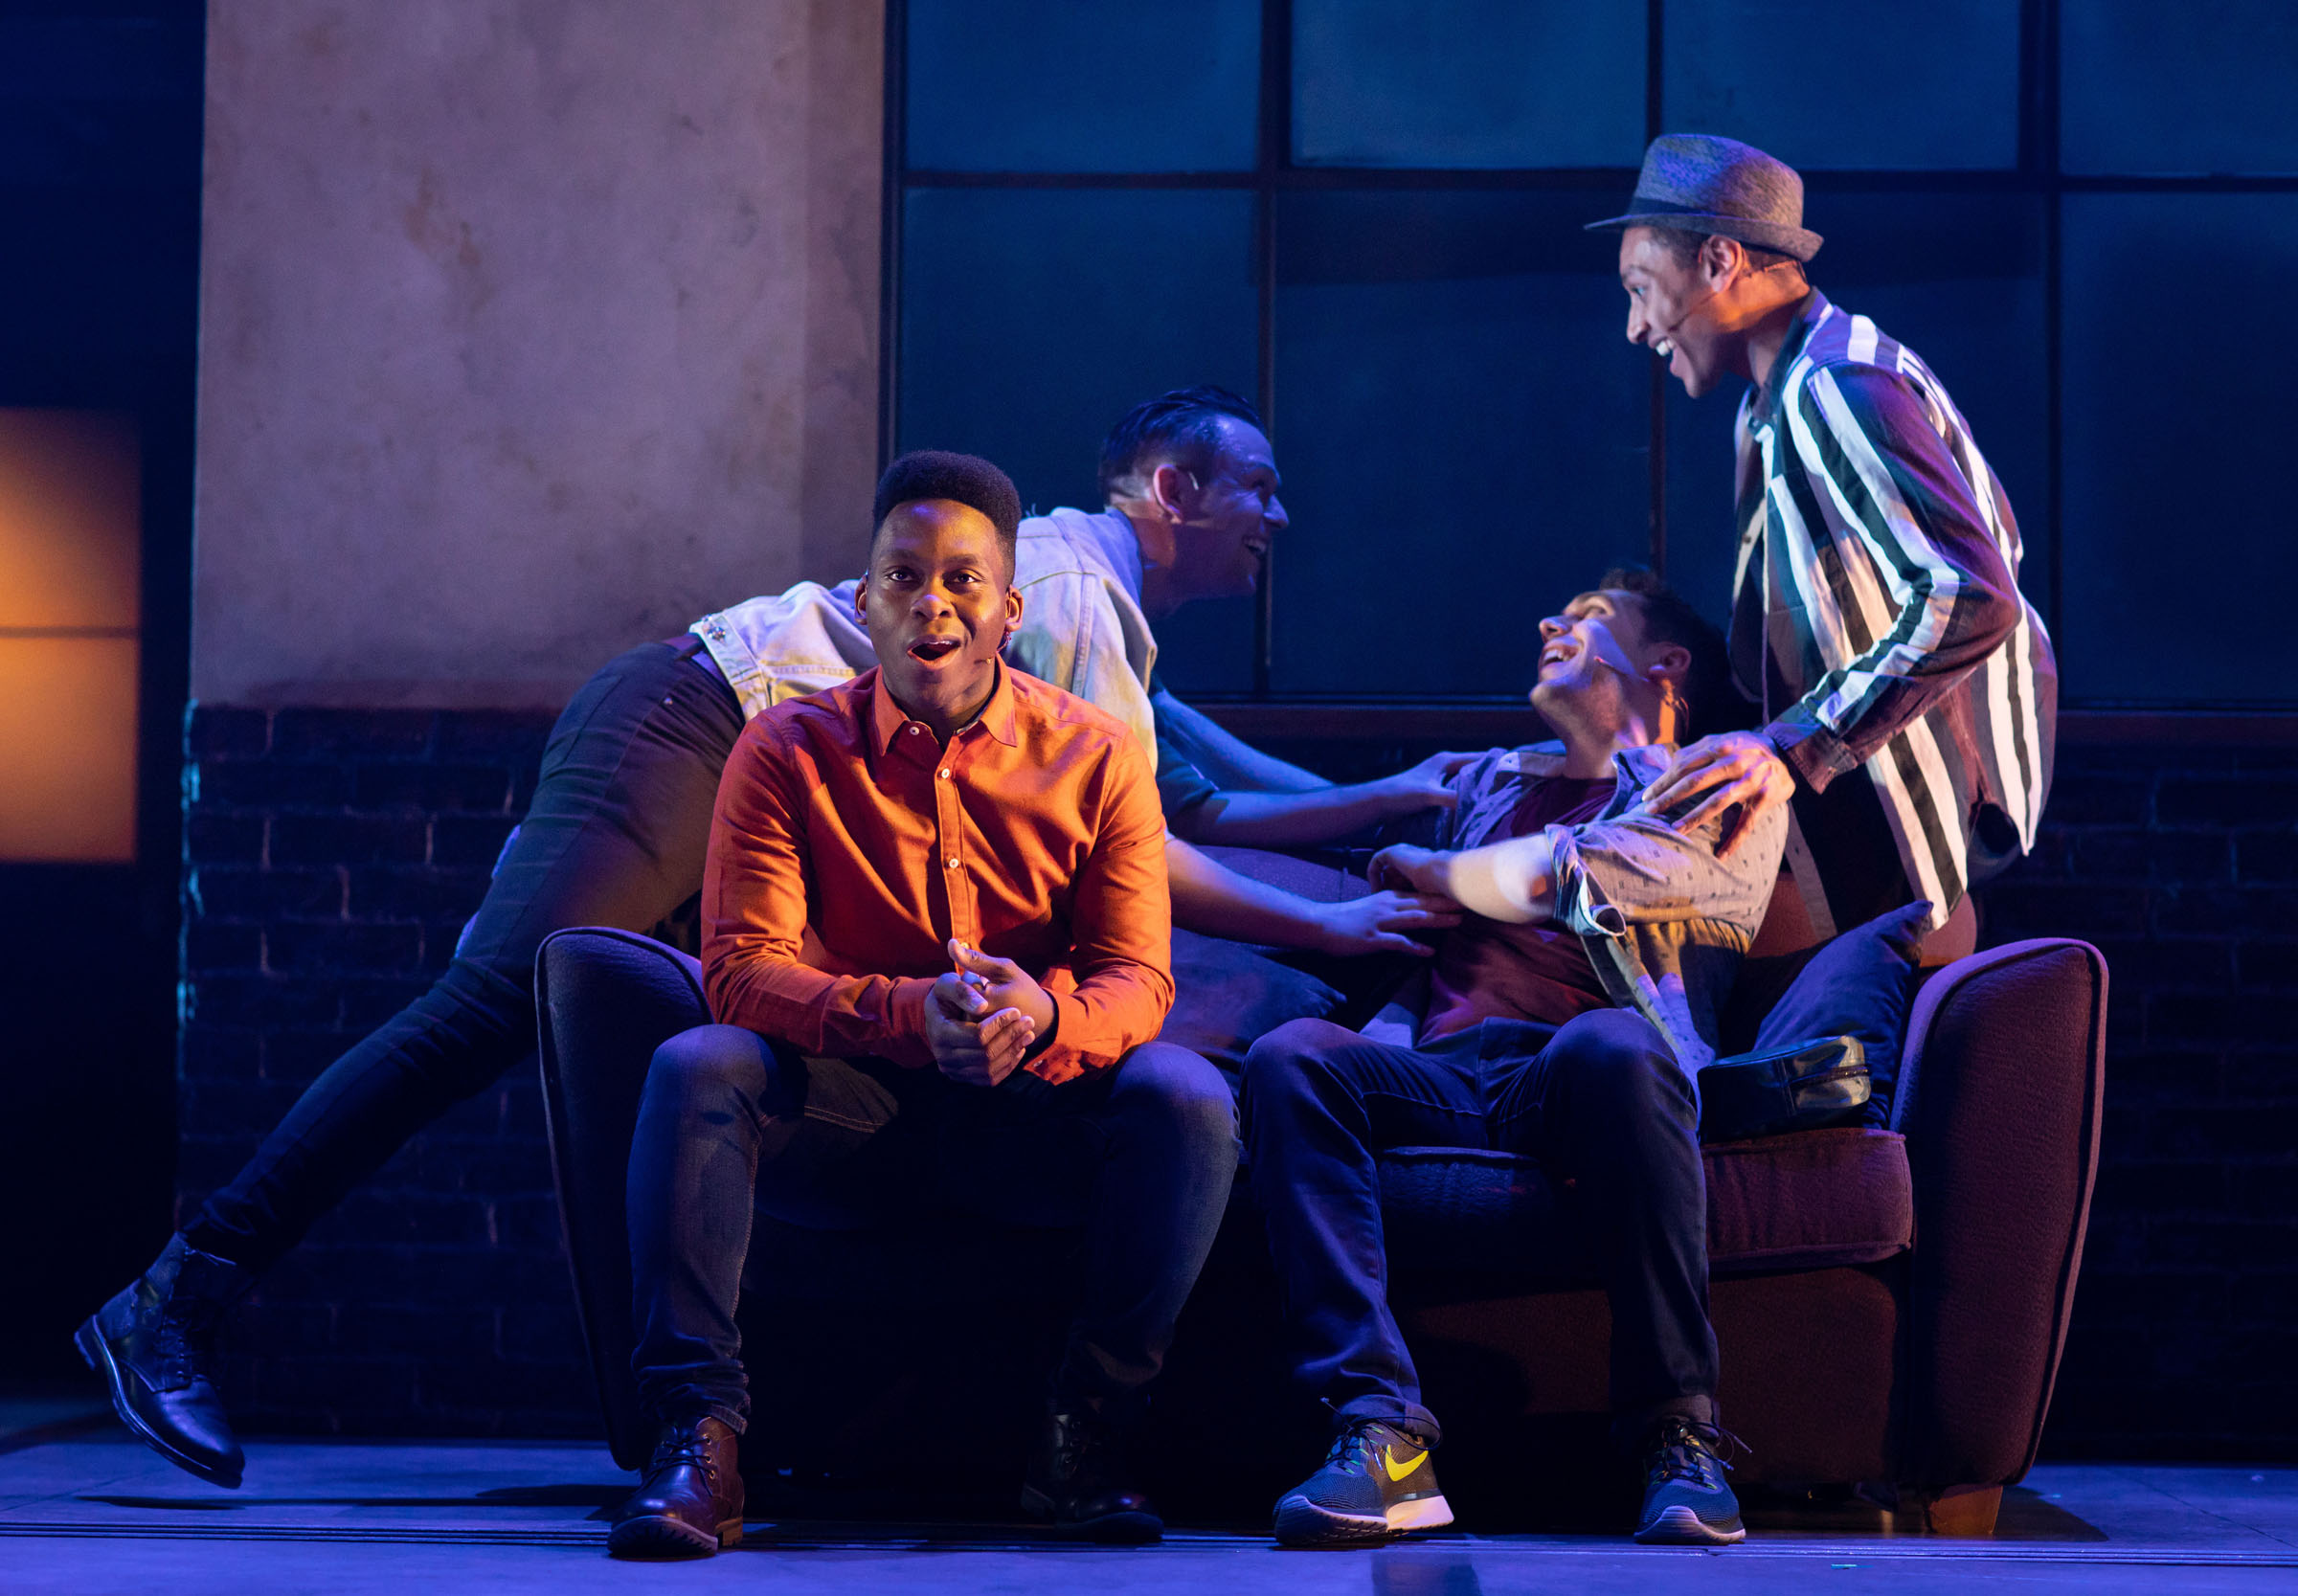 Tyrone Huntley (Obi); Sandy Batchelor (Raymond); Billy Cullum (Alex); and Arun Blair-Mangat (Damien) in 'Leave to Remain'